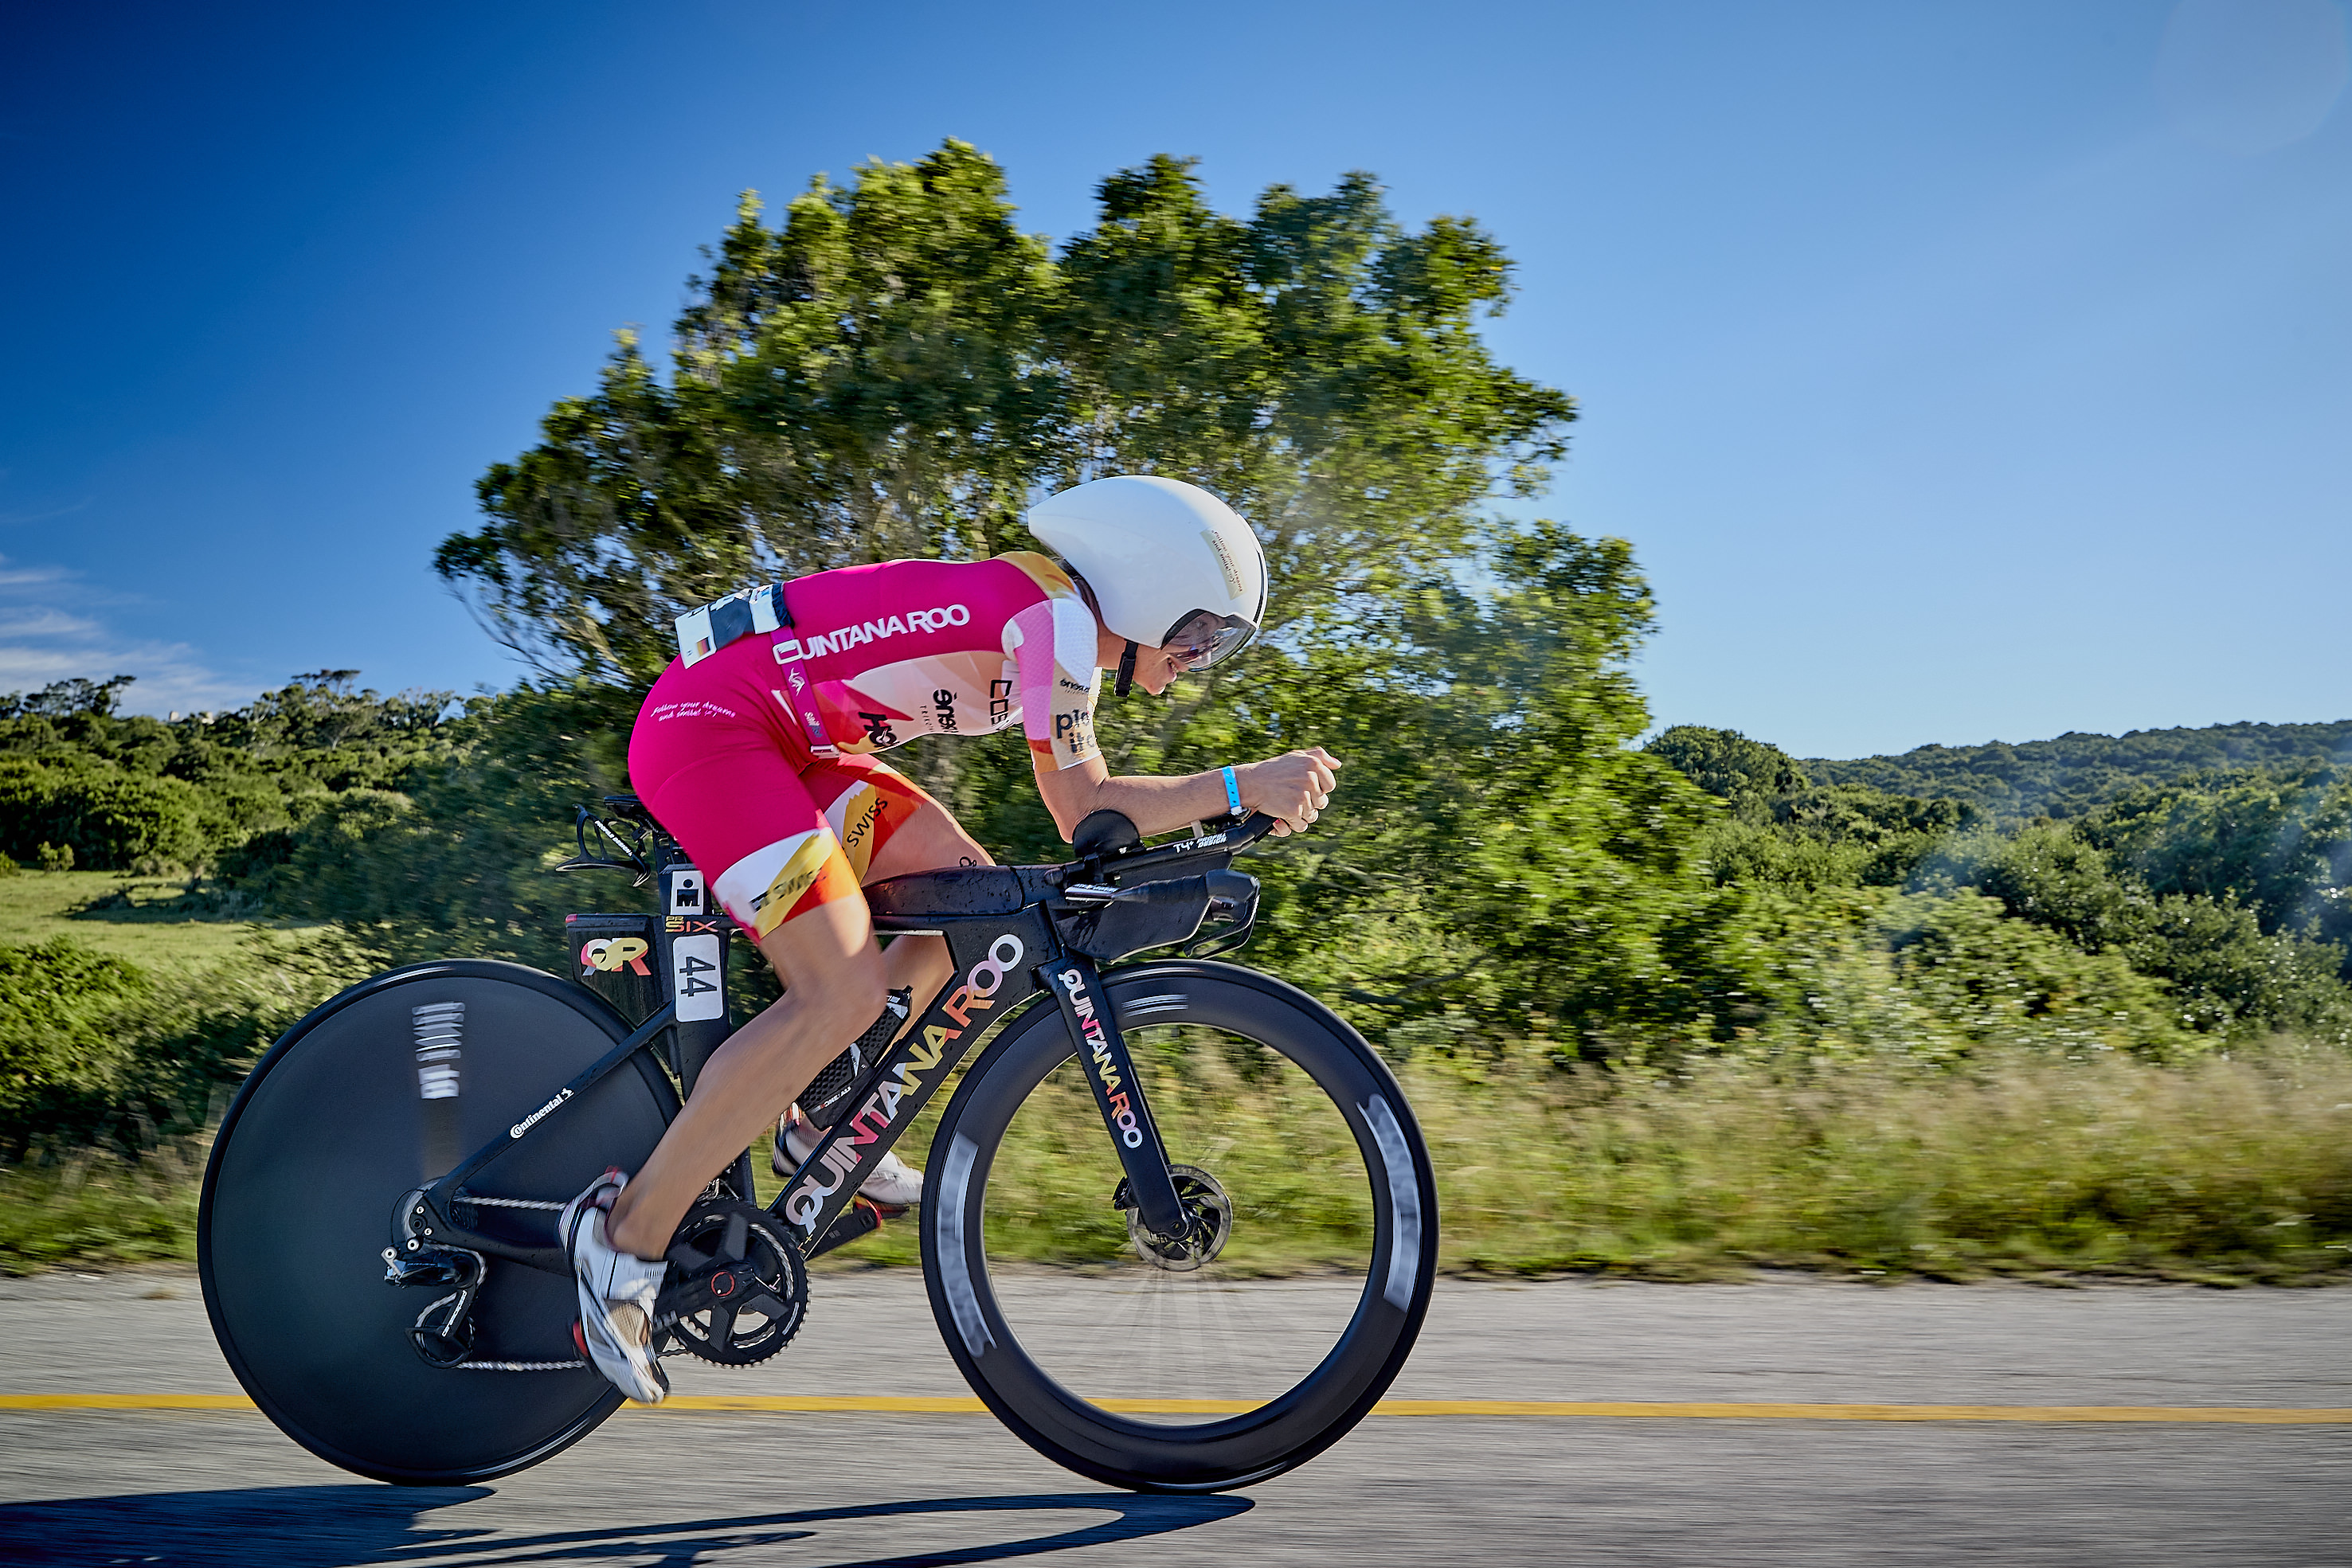 Ironman South Africa - leading the bike